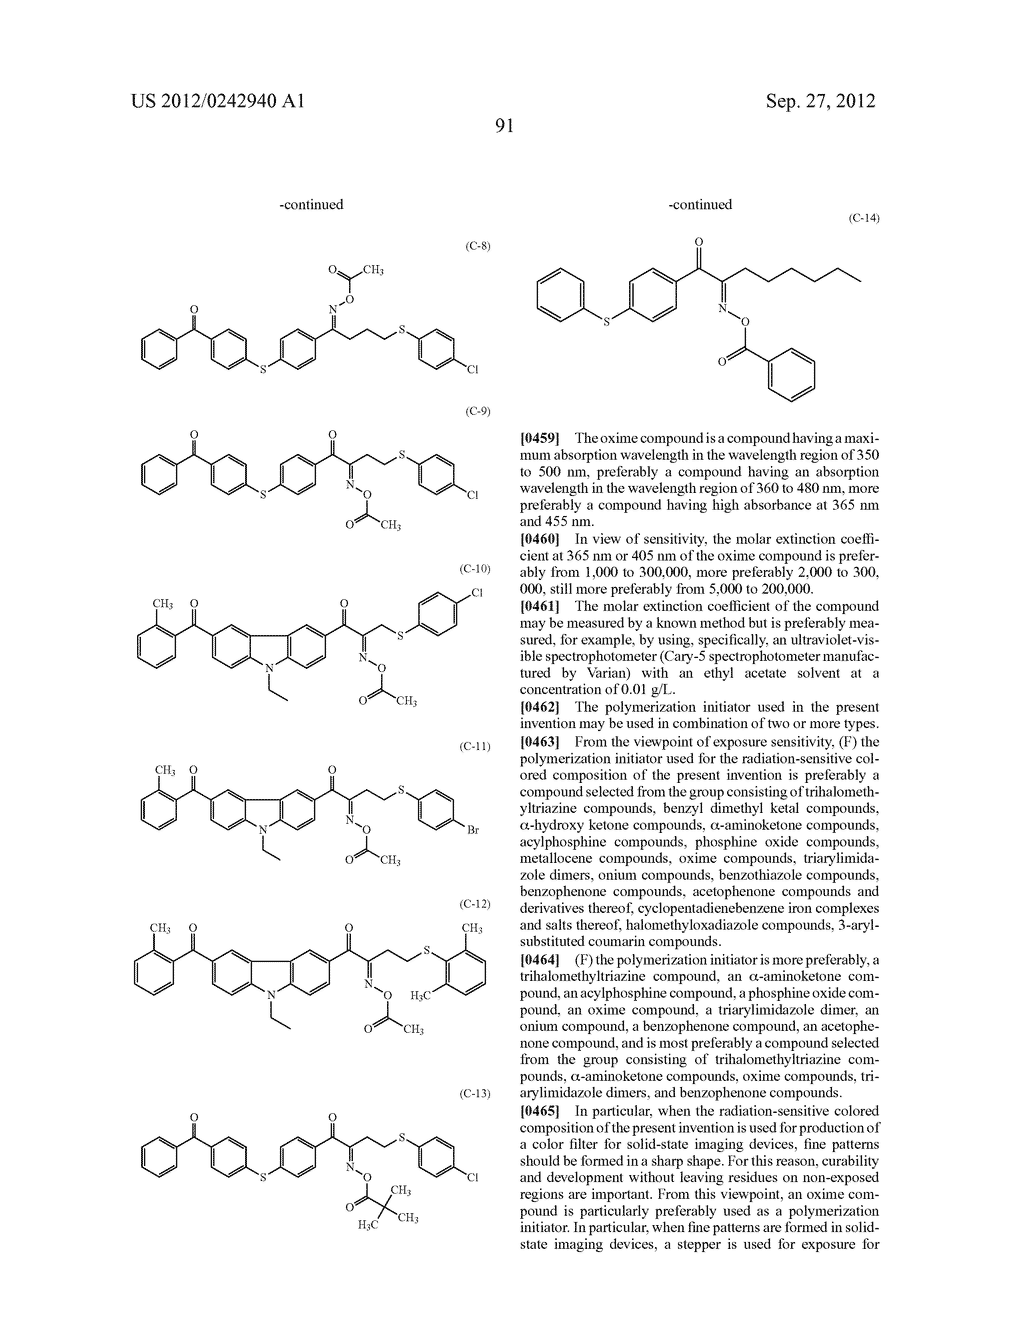 RADIATION-SENSITIVE COLORED COMPOSITION, COLOR FILTER, METHOD FOR     PRODUCING A COLOR PATTERN, METHOD FOR PRODUCING COLOR FILTER, SOLID-STATE     IMAGING DEVICE, AND LIQUID CRYSTAL DISPLAY APPARATUS - diagram, schematic, and image 92